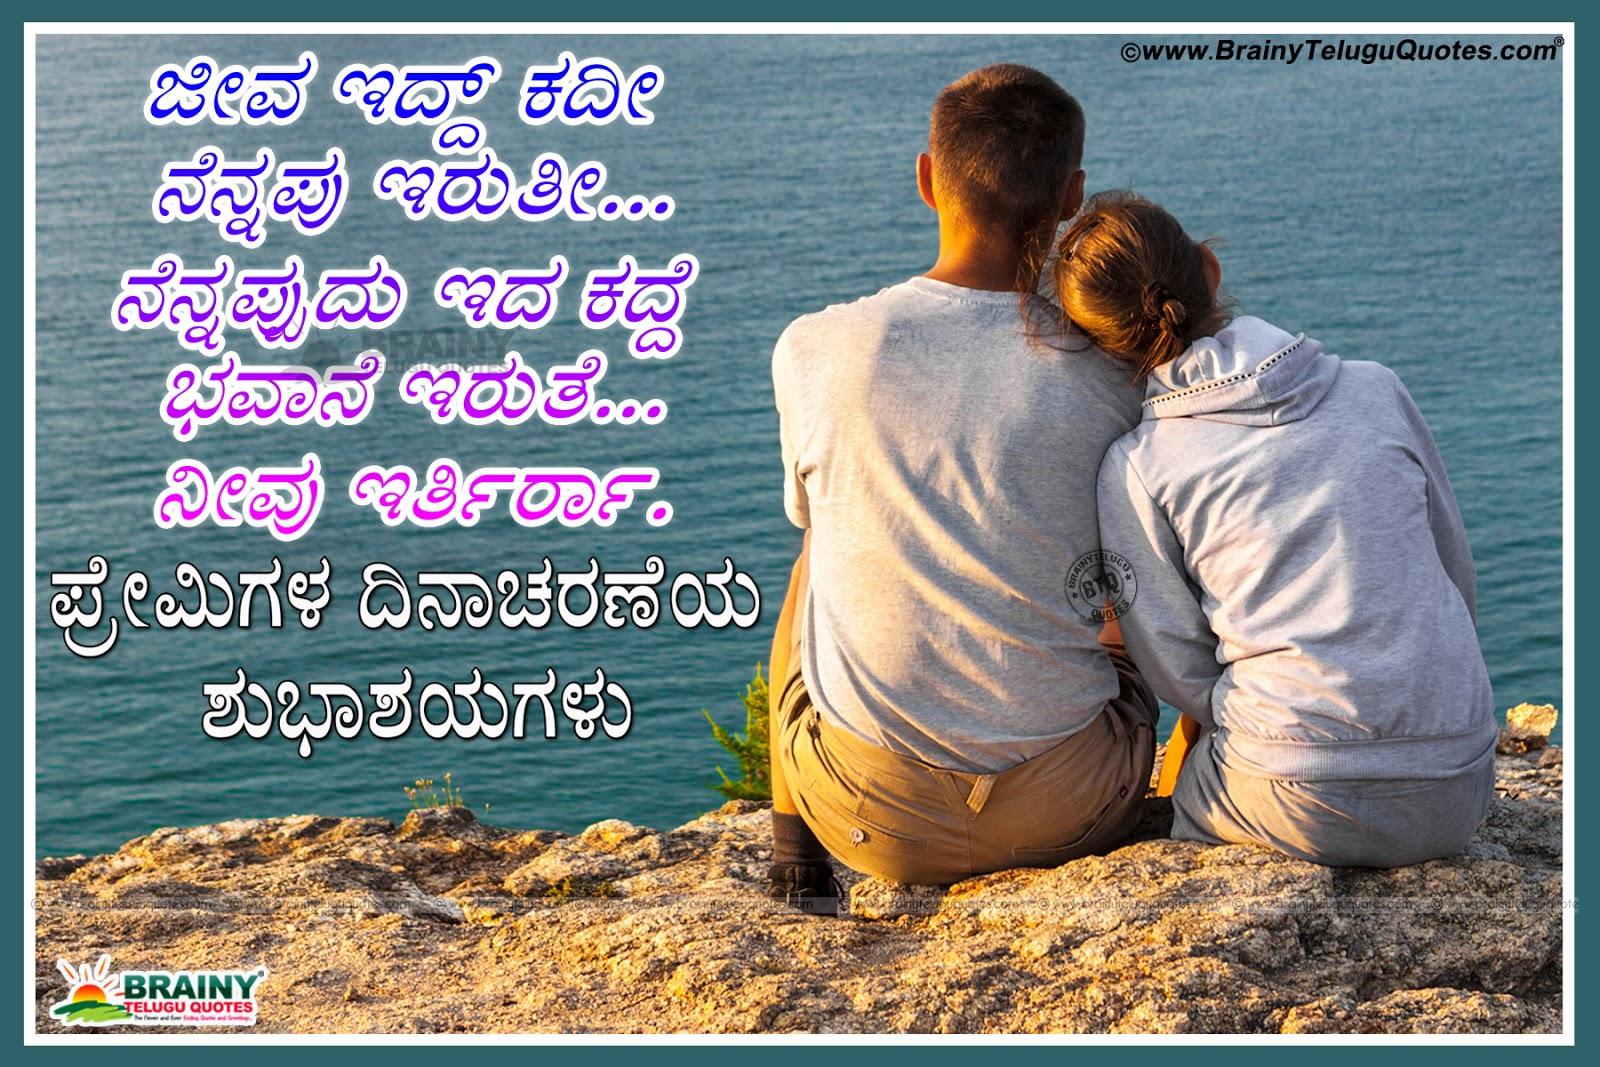 Best Valentines Day Wishes Quotes In Kannada, Kannada - Romantic Love Quotes In Kannada - HD Wallpaper